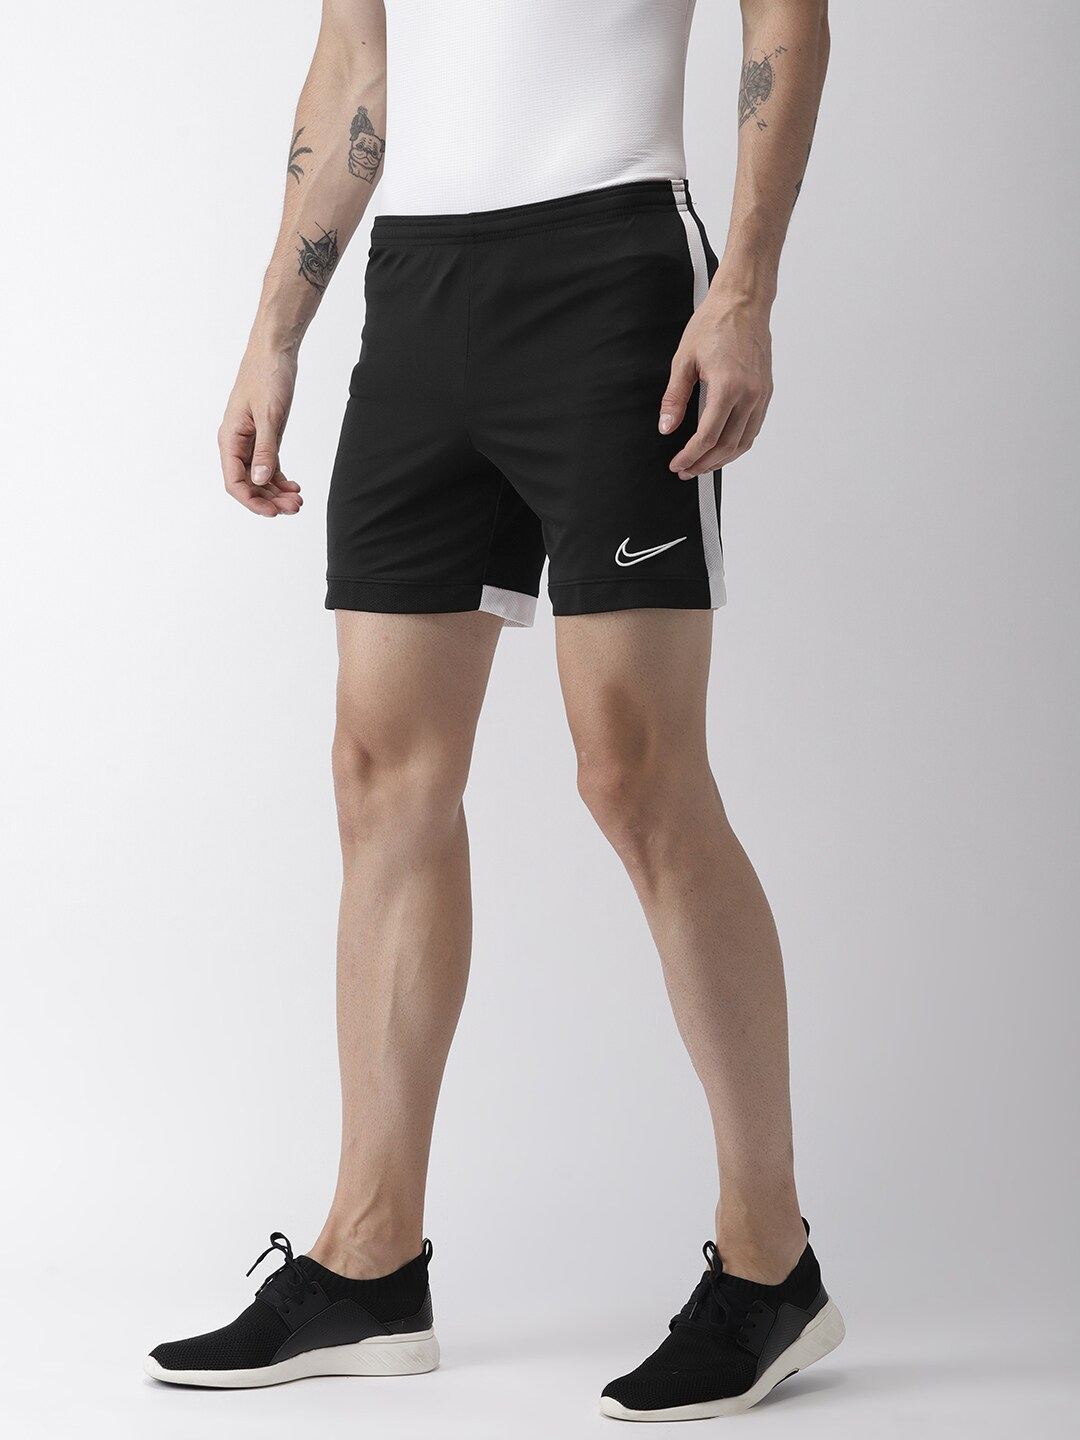 6dbf30a741cb5 Nike T&s Skirts Shorts - Buy Nike T&s Skirts Shorts online in India